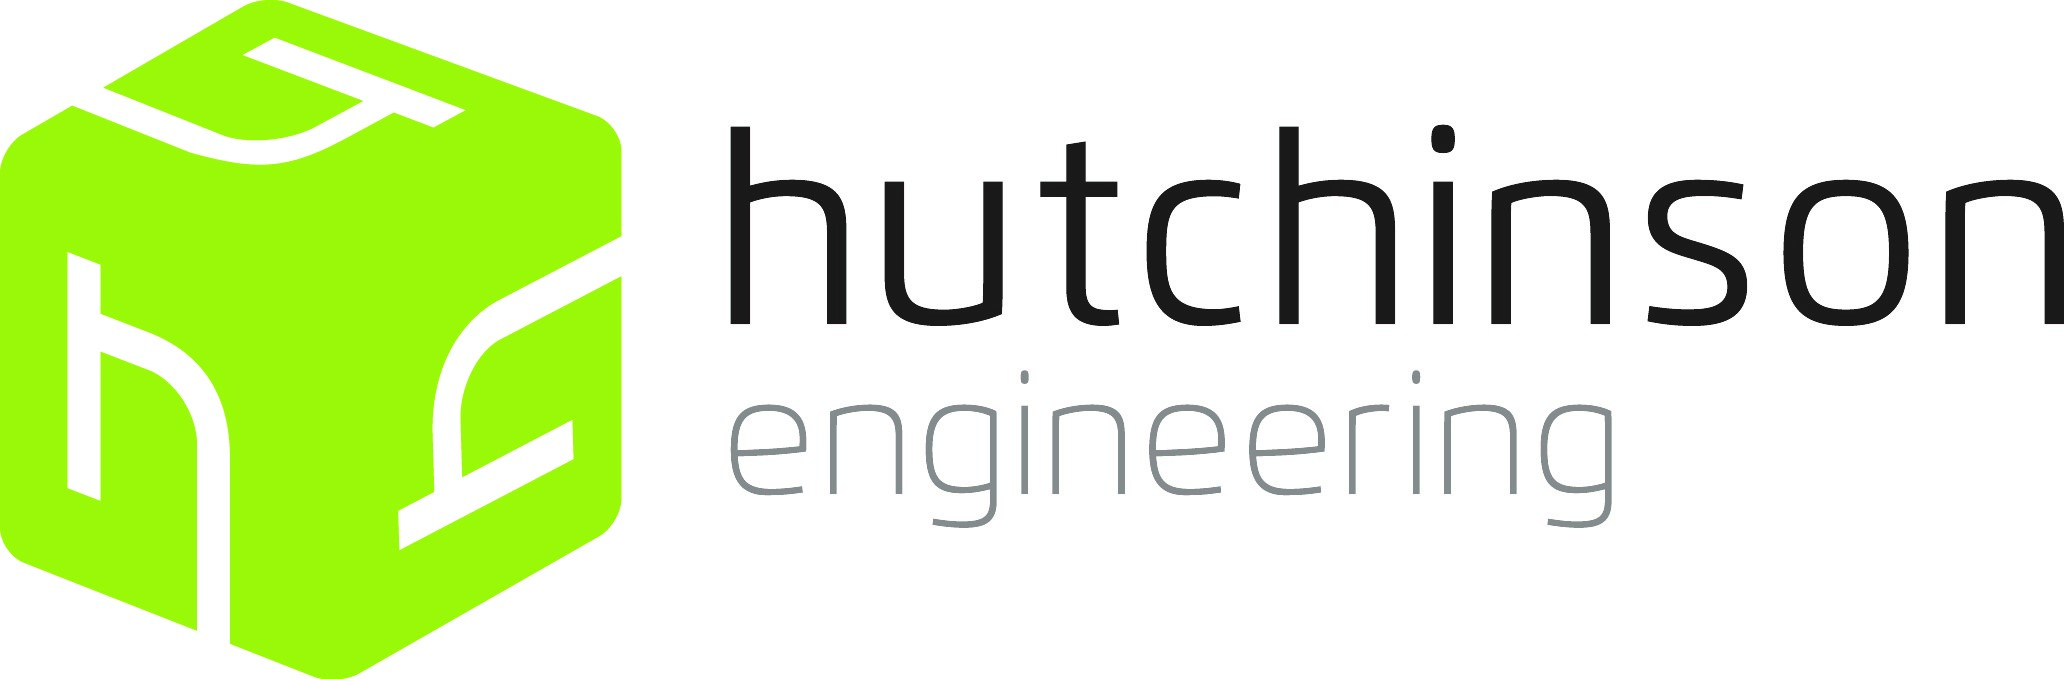 Hutchinson Engineering Ltd